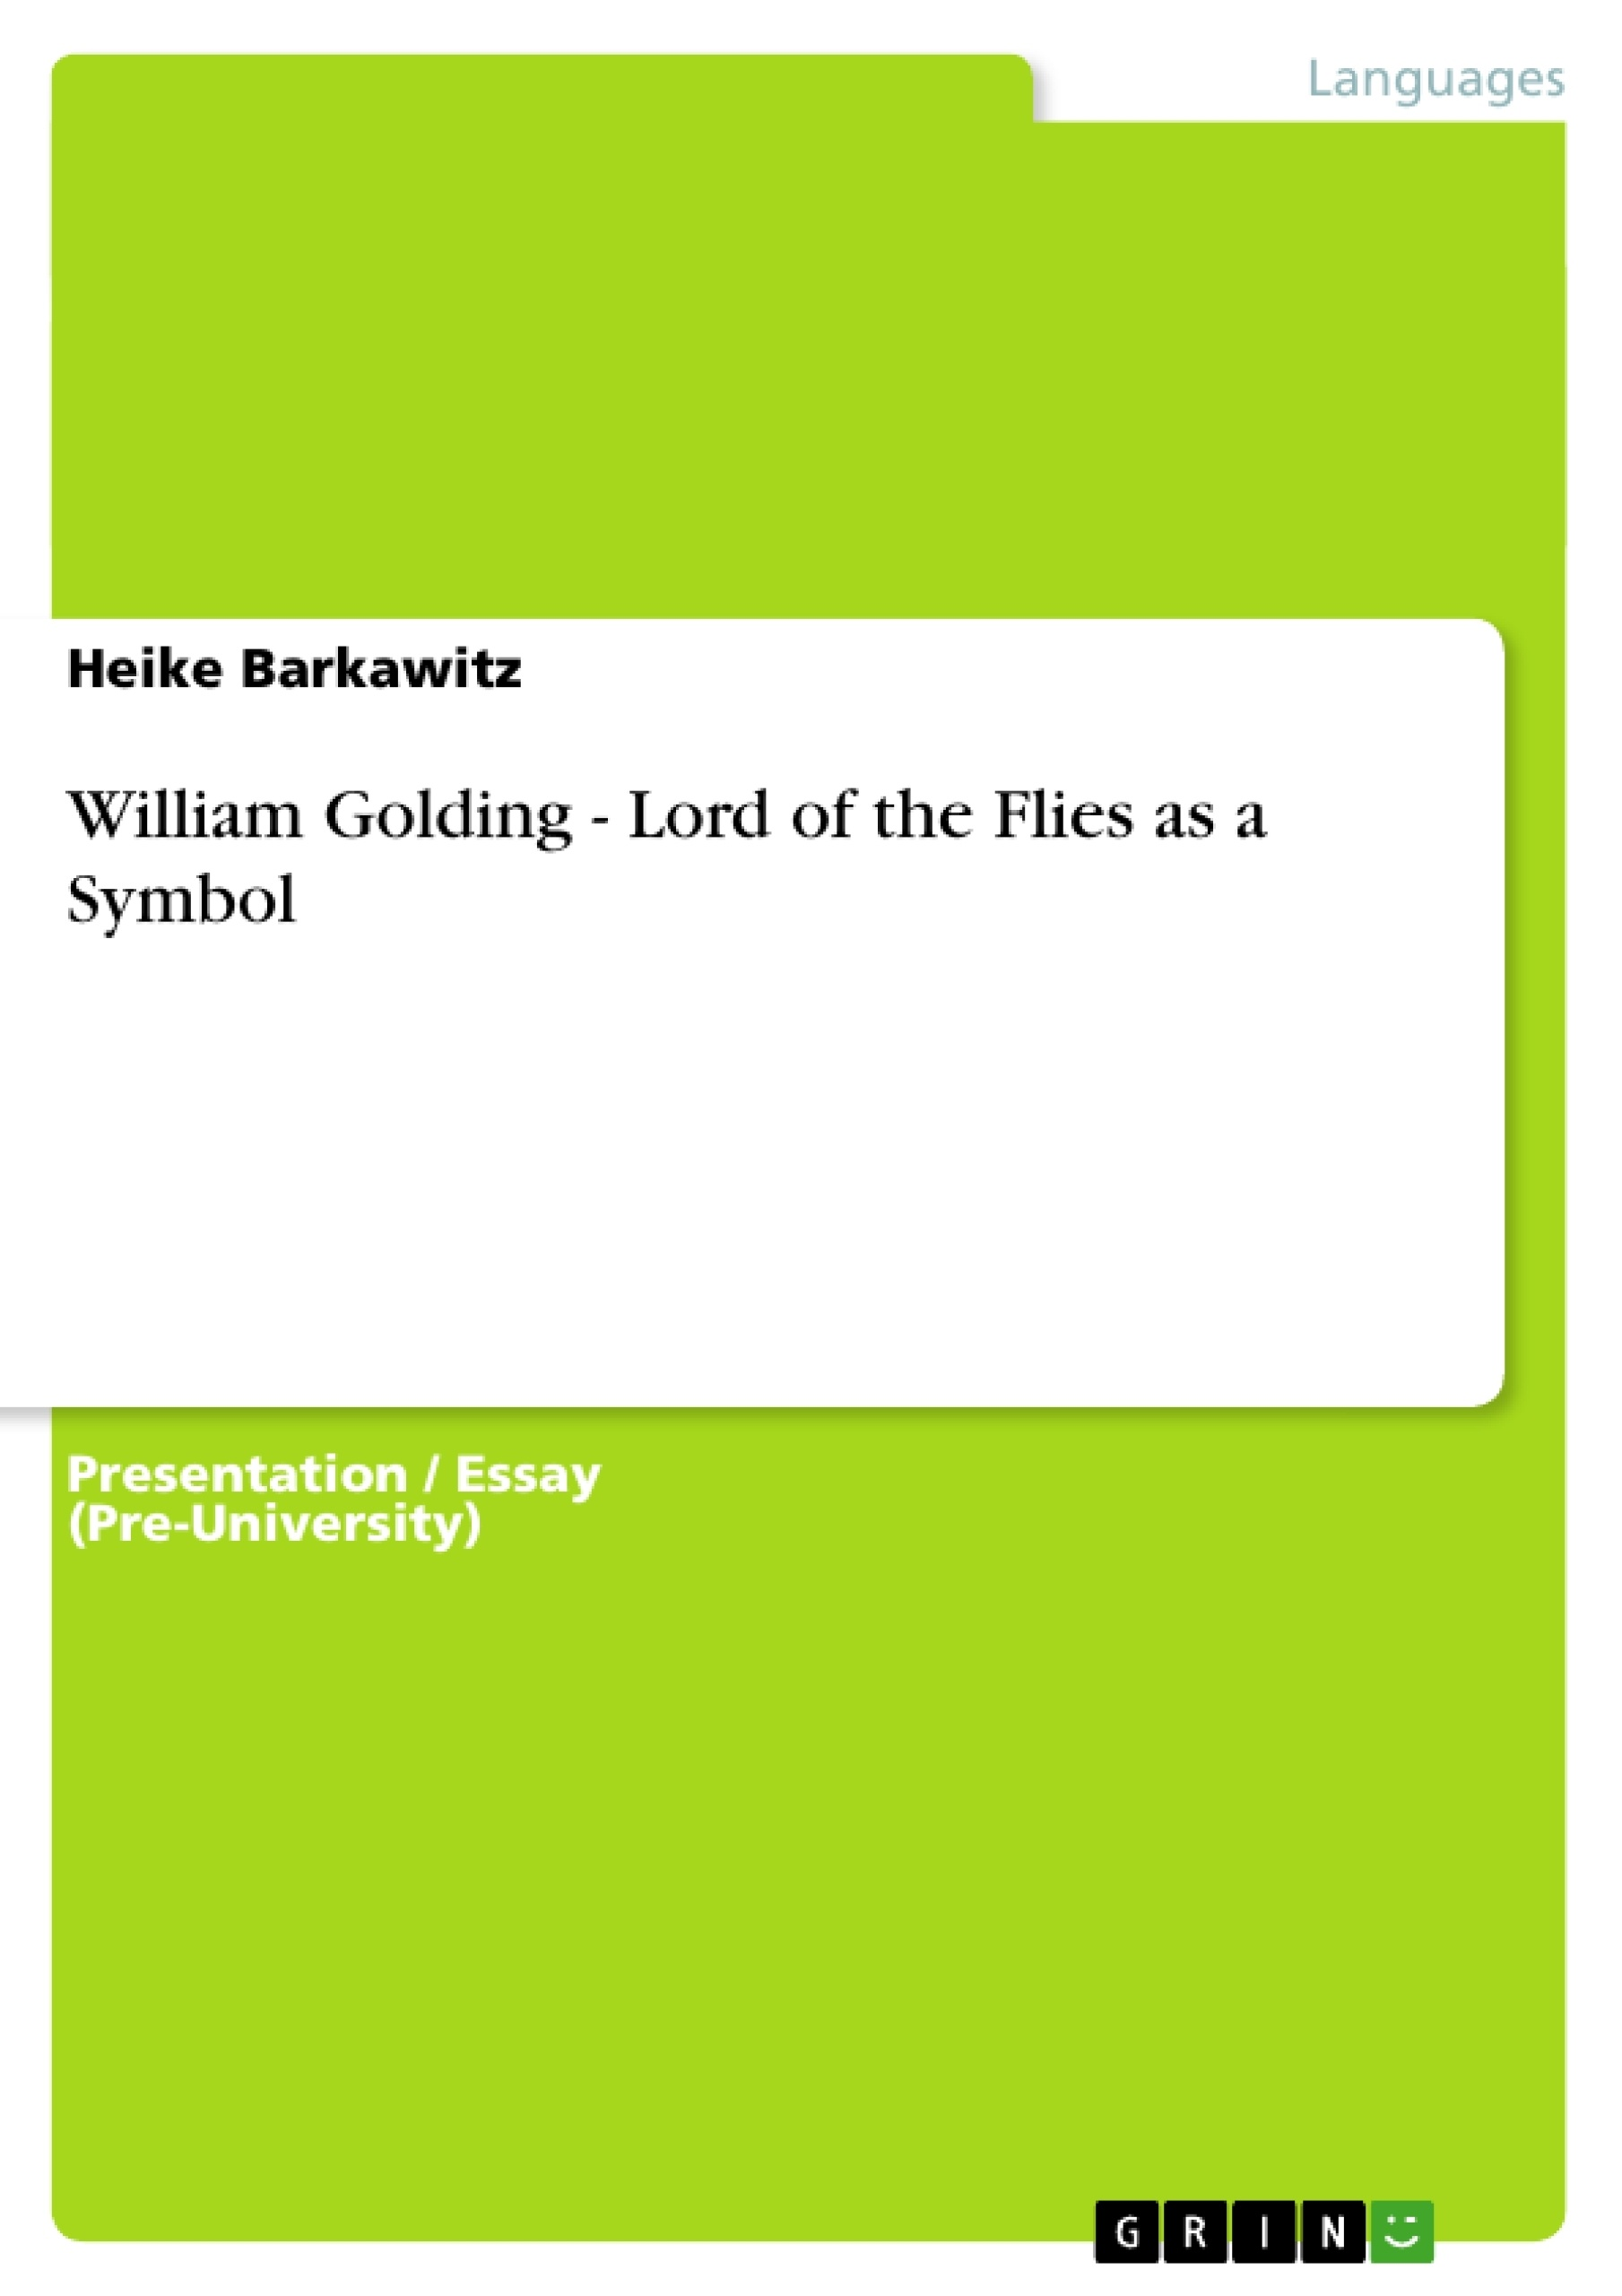 lord of the flies jack essay review lord of the flies auckland  william golding lord of the flies as a symbol publish your william golding lord of the